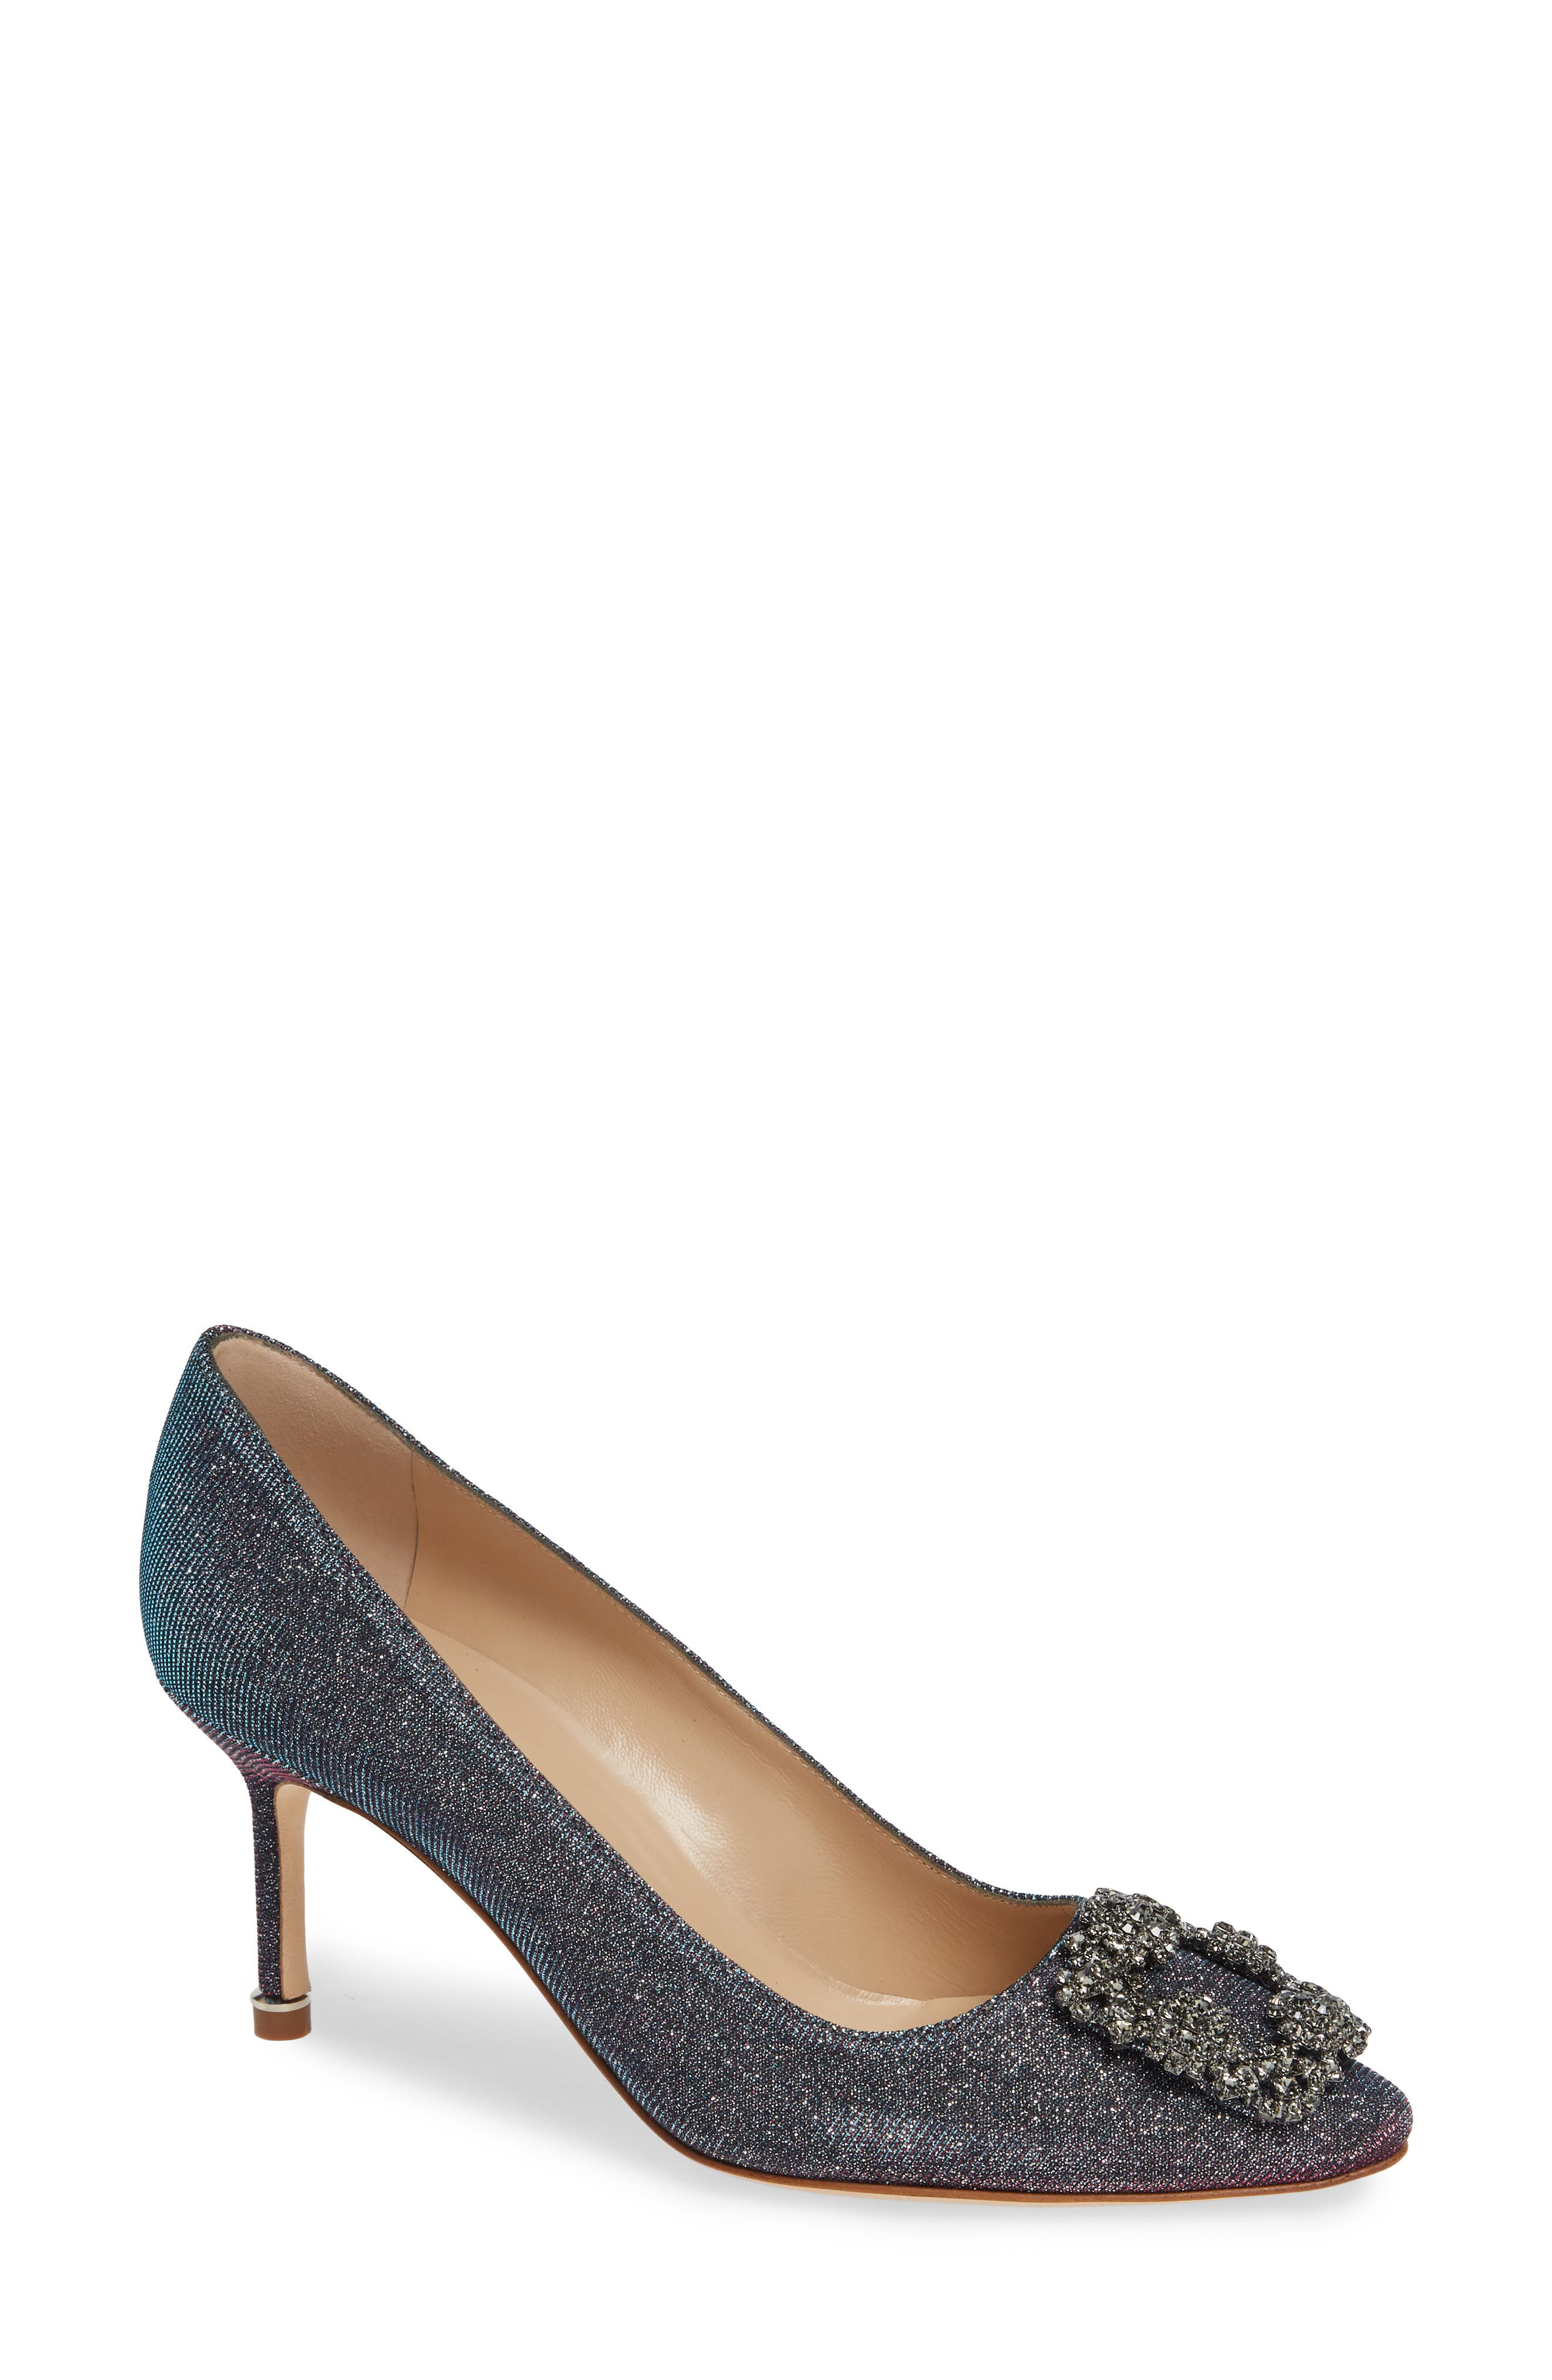 MANOLO BLAHNIK, Hangisi Pump, Main thumbnail 1, color, MIDNIGHT BLUE